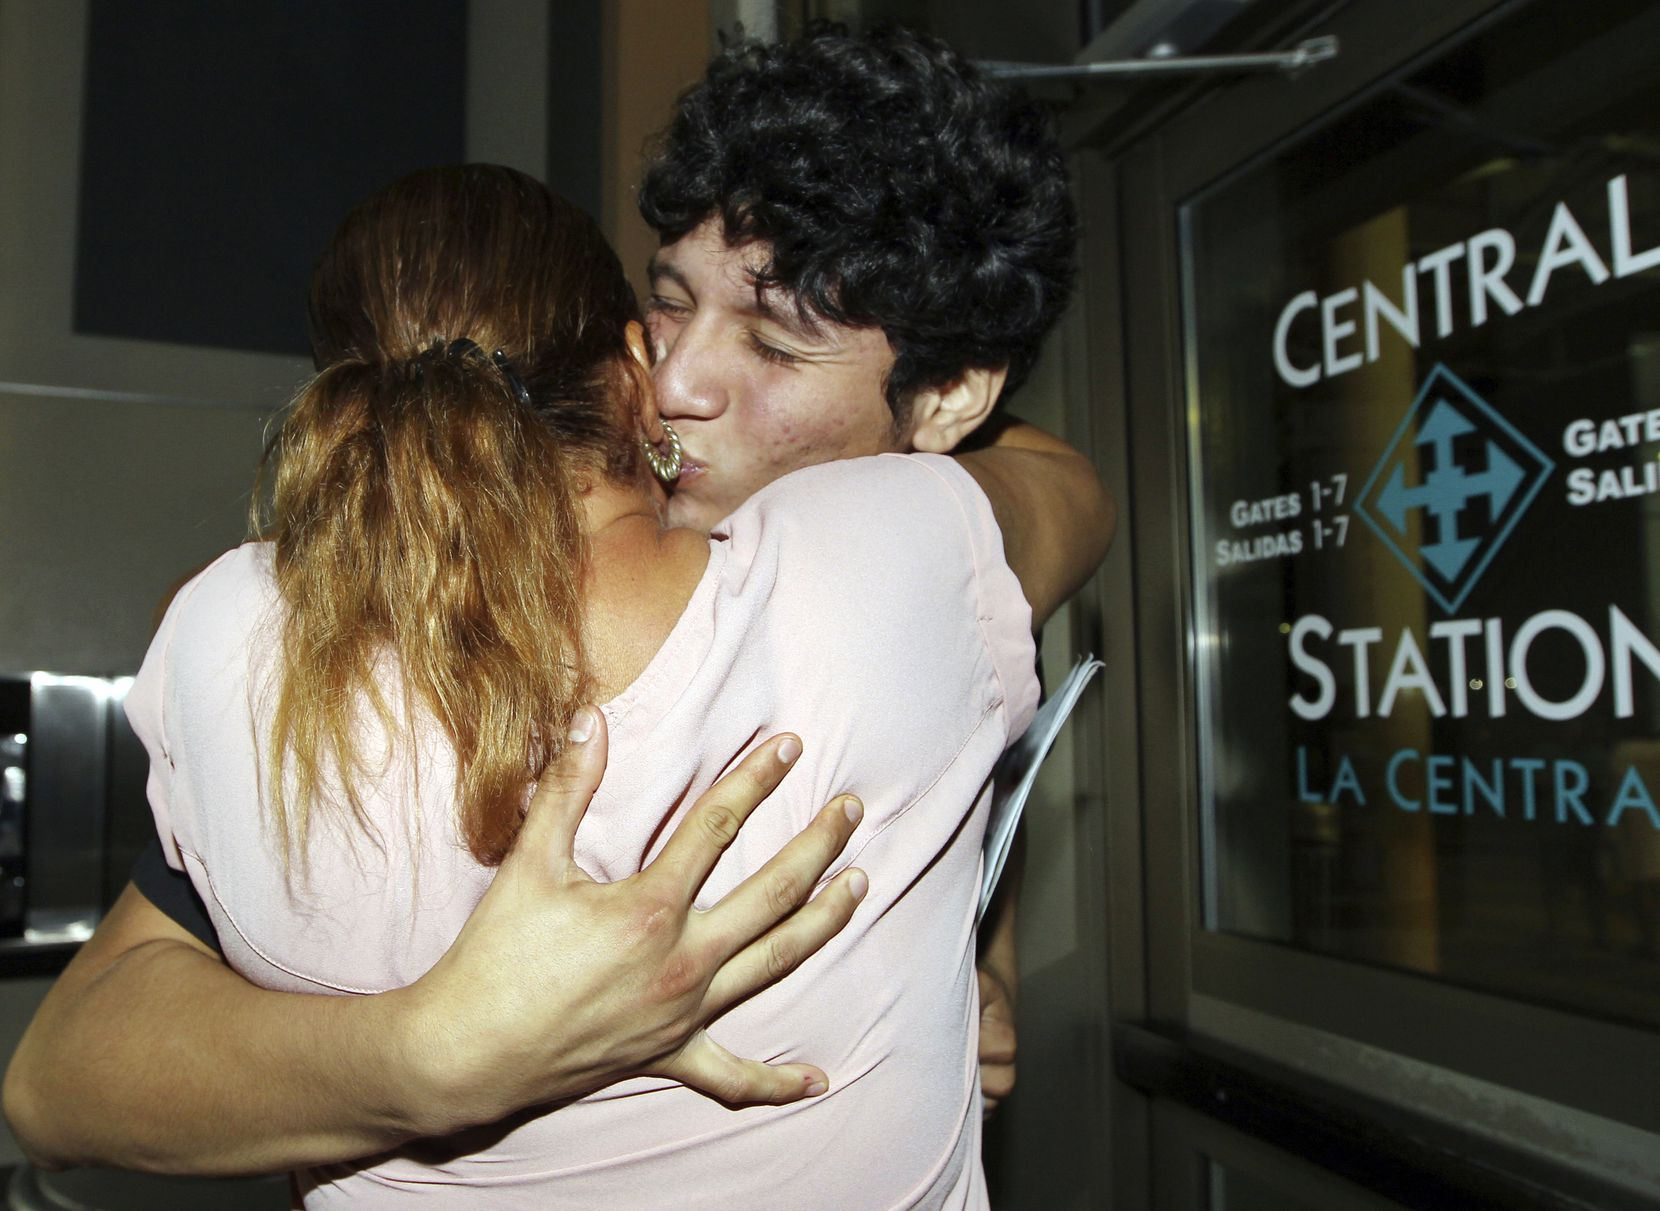 Francisco Galicia, right, kisses his mother Sanjuana Galicia at the McAllen, Texas, Central Station, Wednesday, July 24, 2019. Galicia, 18, who was born in the U.S. was released Tuesday, July 23, from federal immigration custody after wrongfully being detained for more than three weeks.